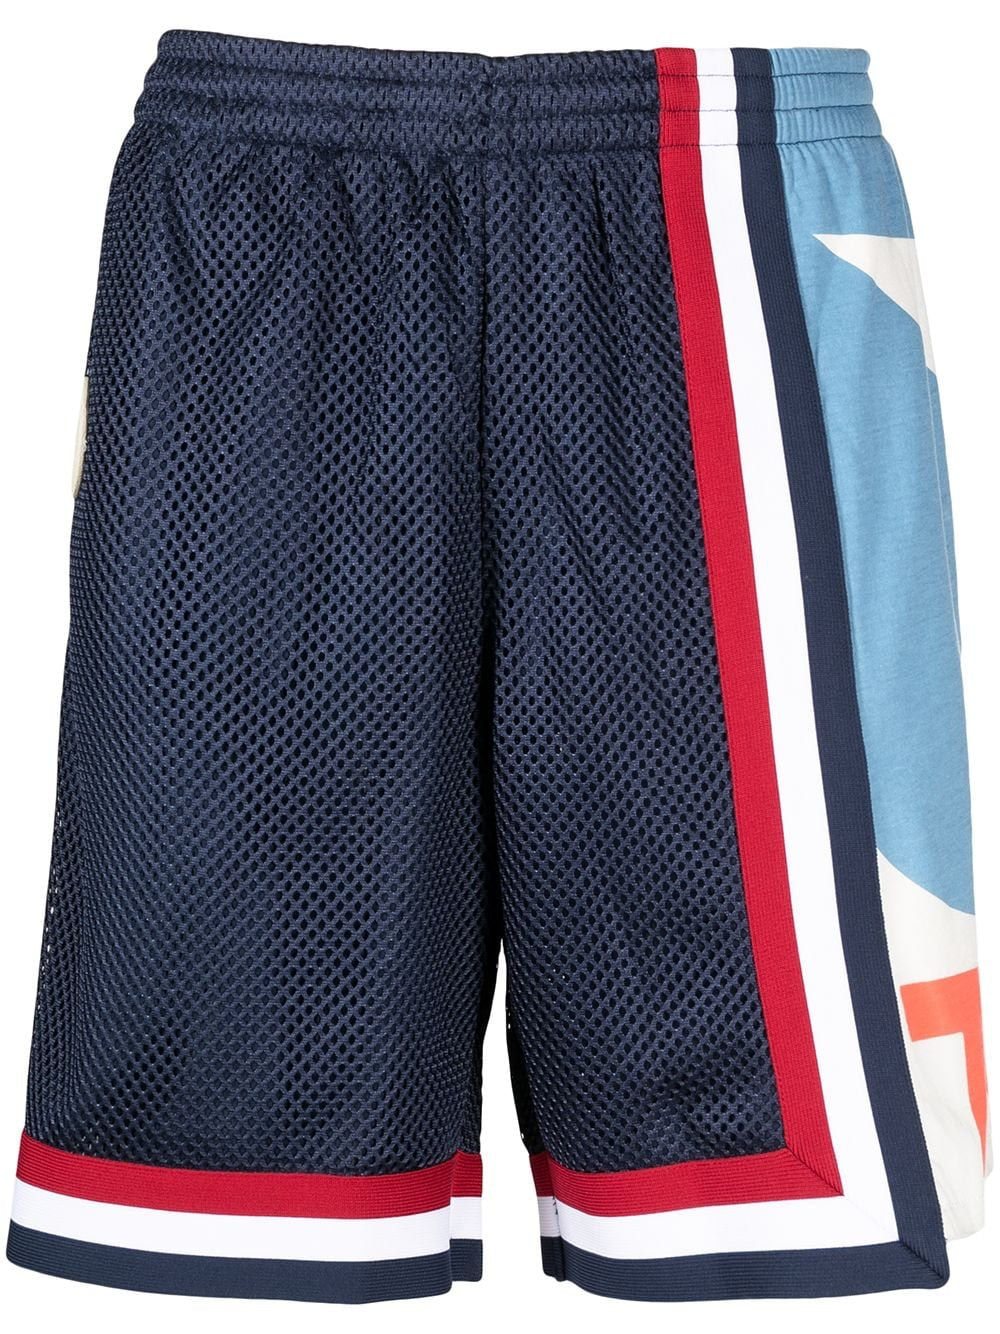 x Converse track shorts